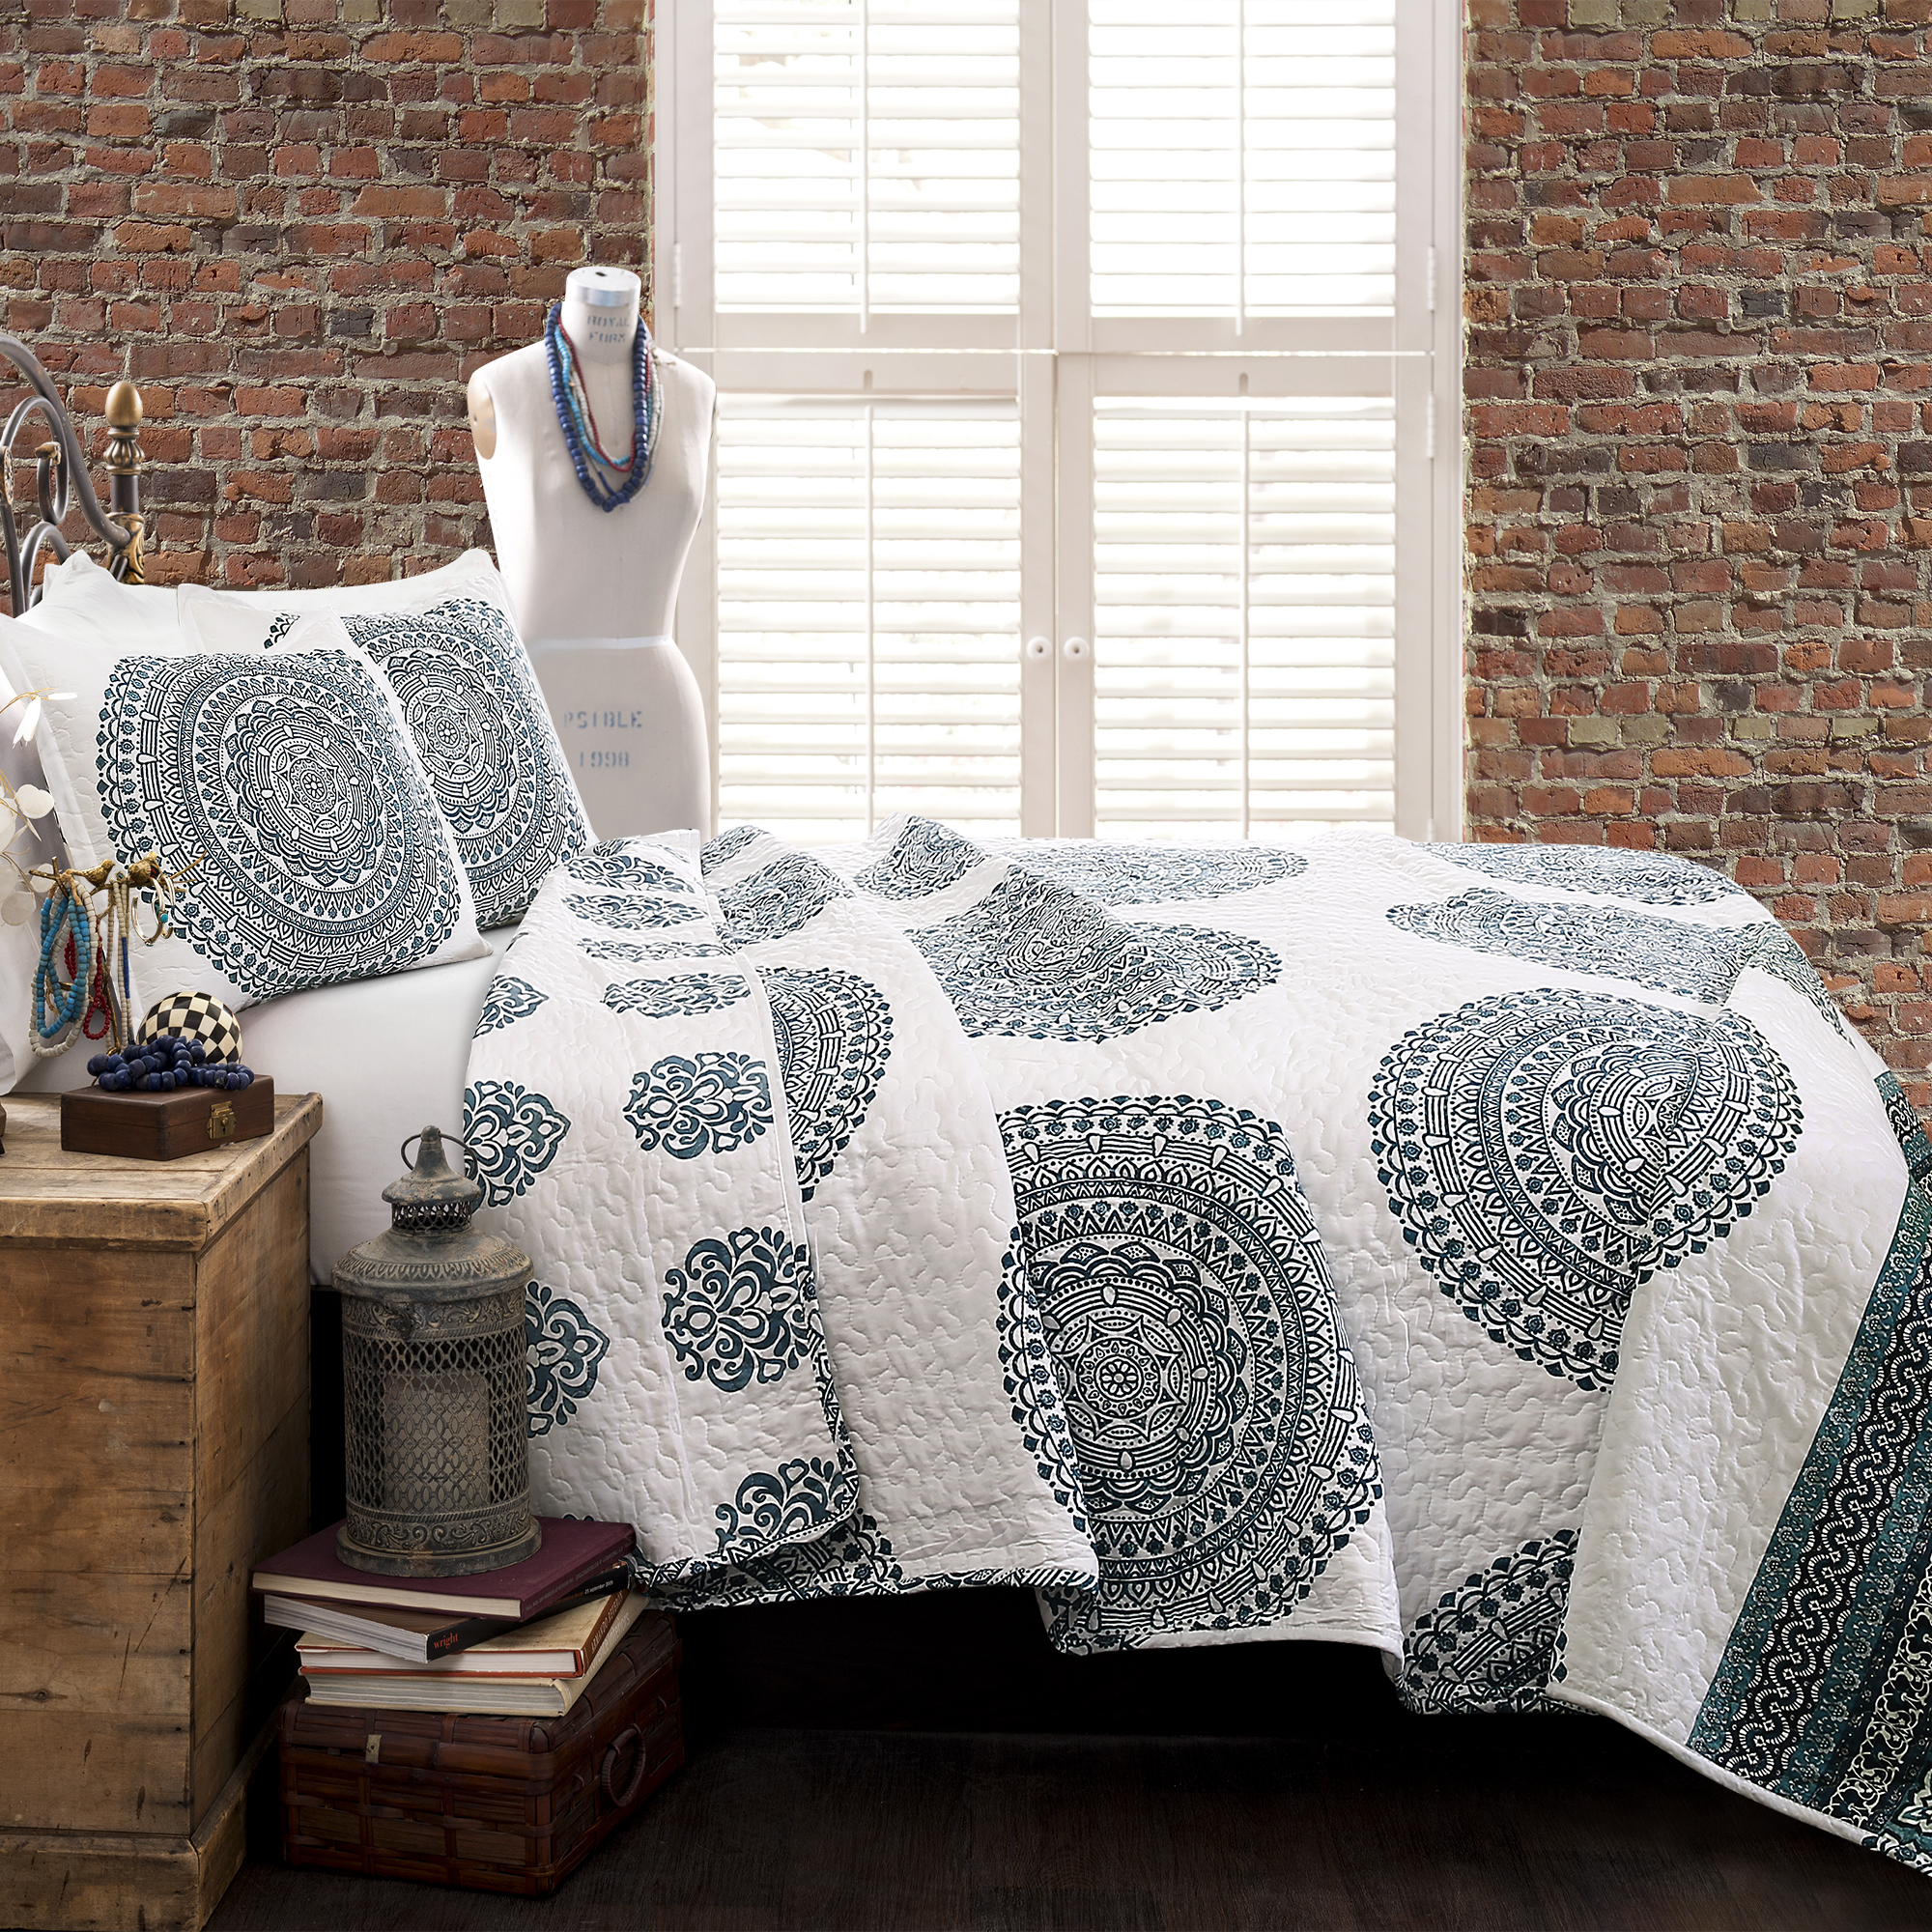 Shaila Medallion Quilt Blue 3Pc Set Full Queen by Triangle Home Fashions